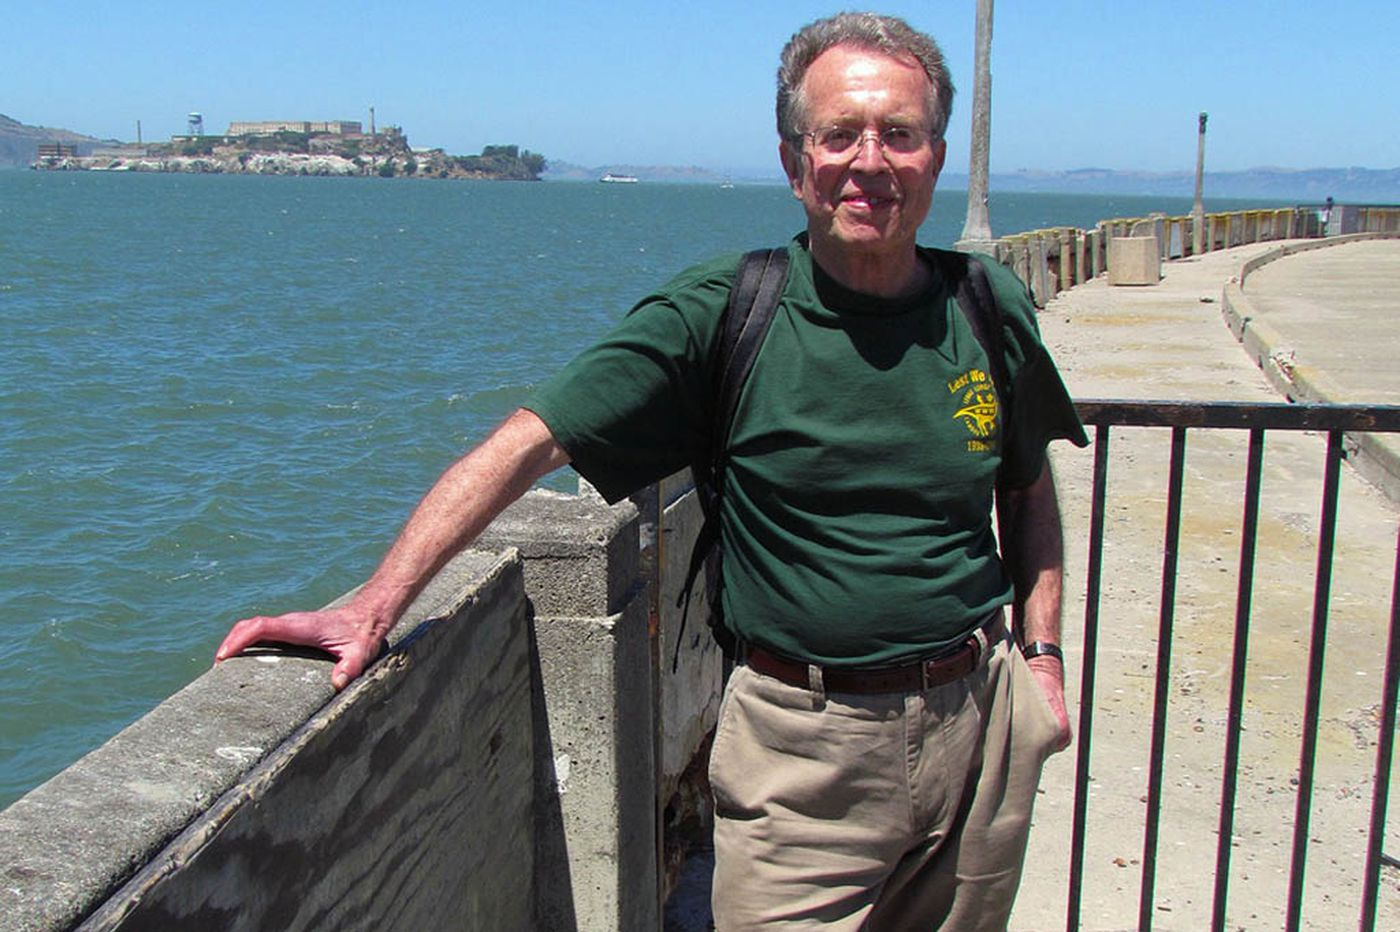 Bruce Brotzman, 73, partner in payroll firm and runner